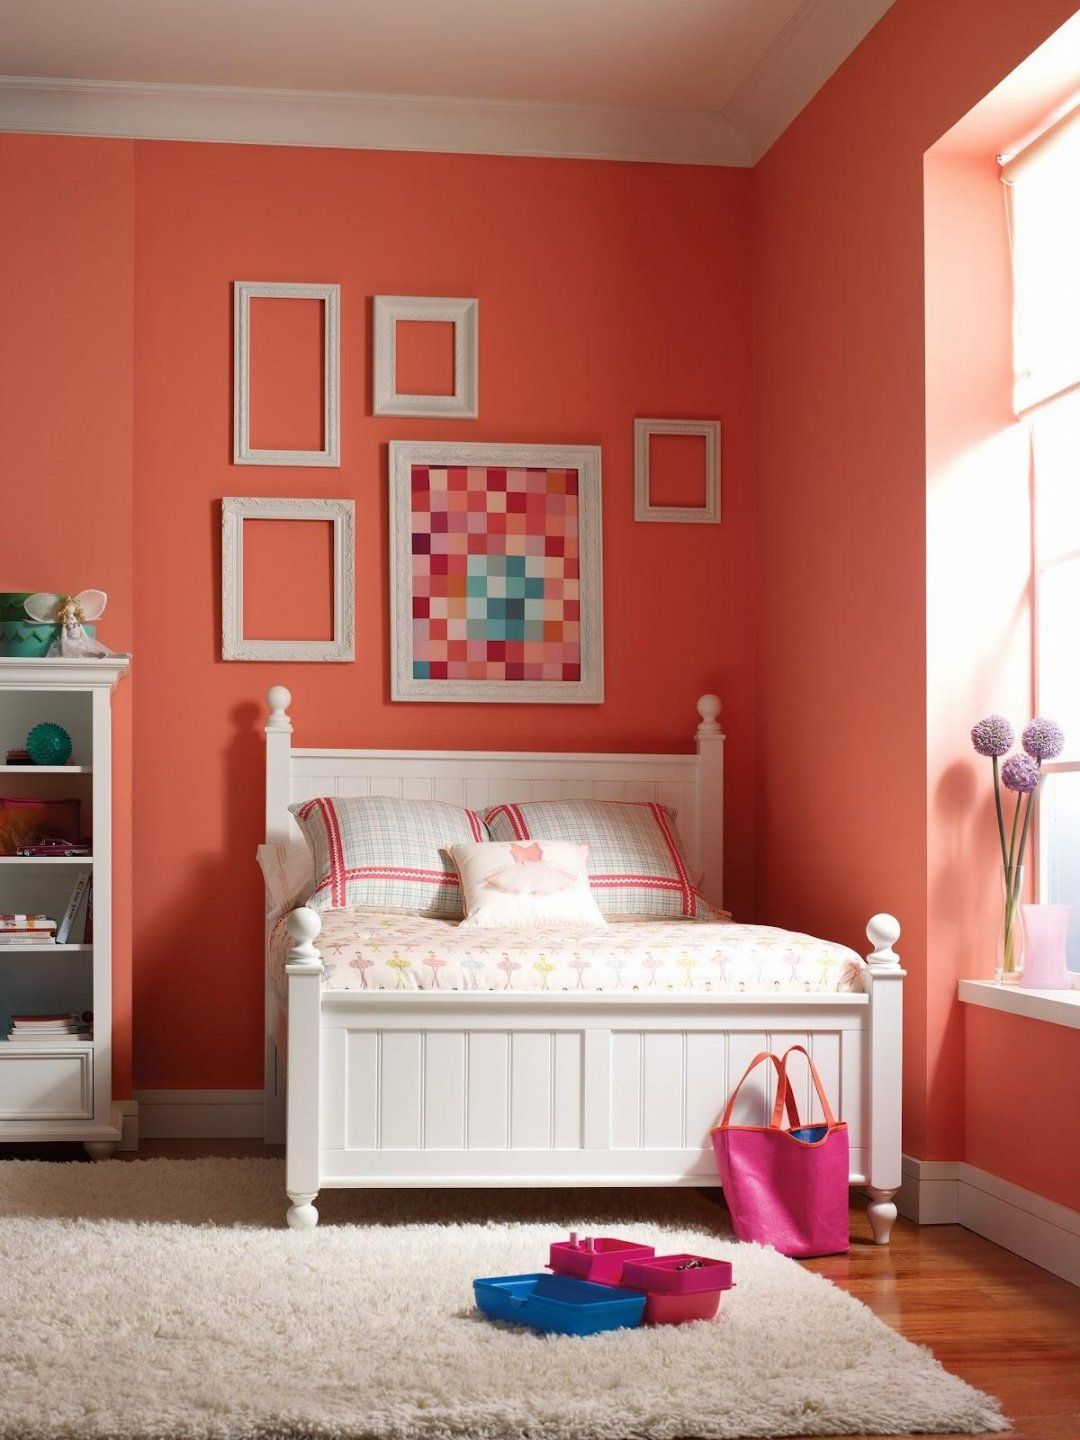 50 perfect bedroom paint color ideas for your next project on decorator paint colors id=46853